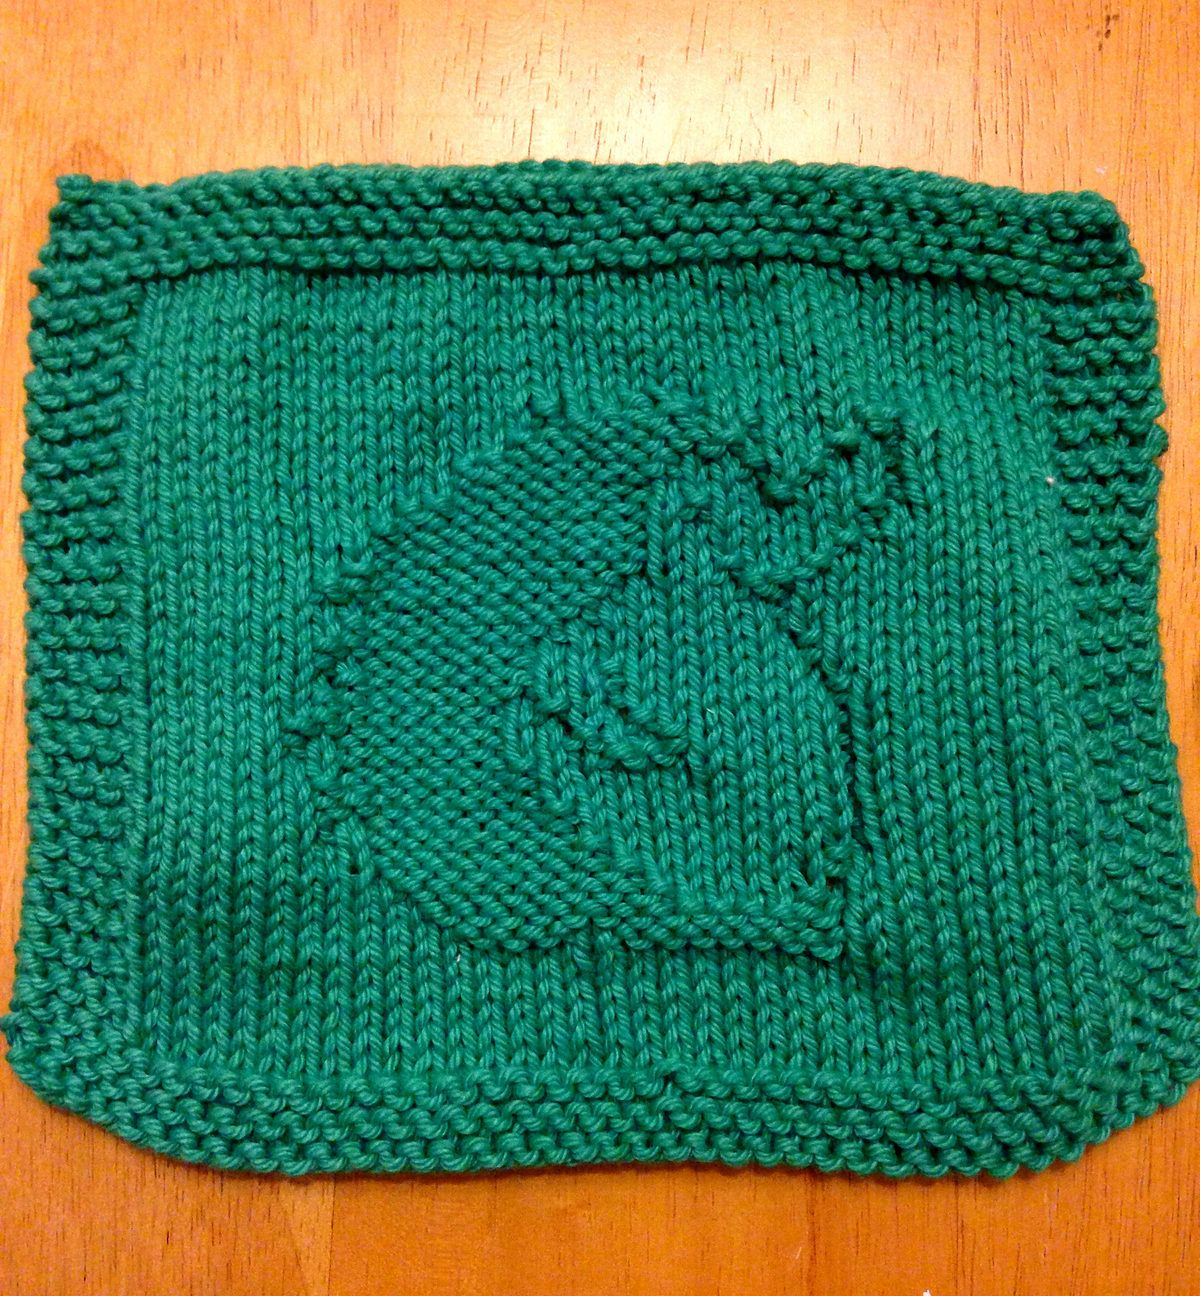 Free Knitting Pattern for Hedgehog Wash Cloth - This easy motif for ...